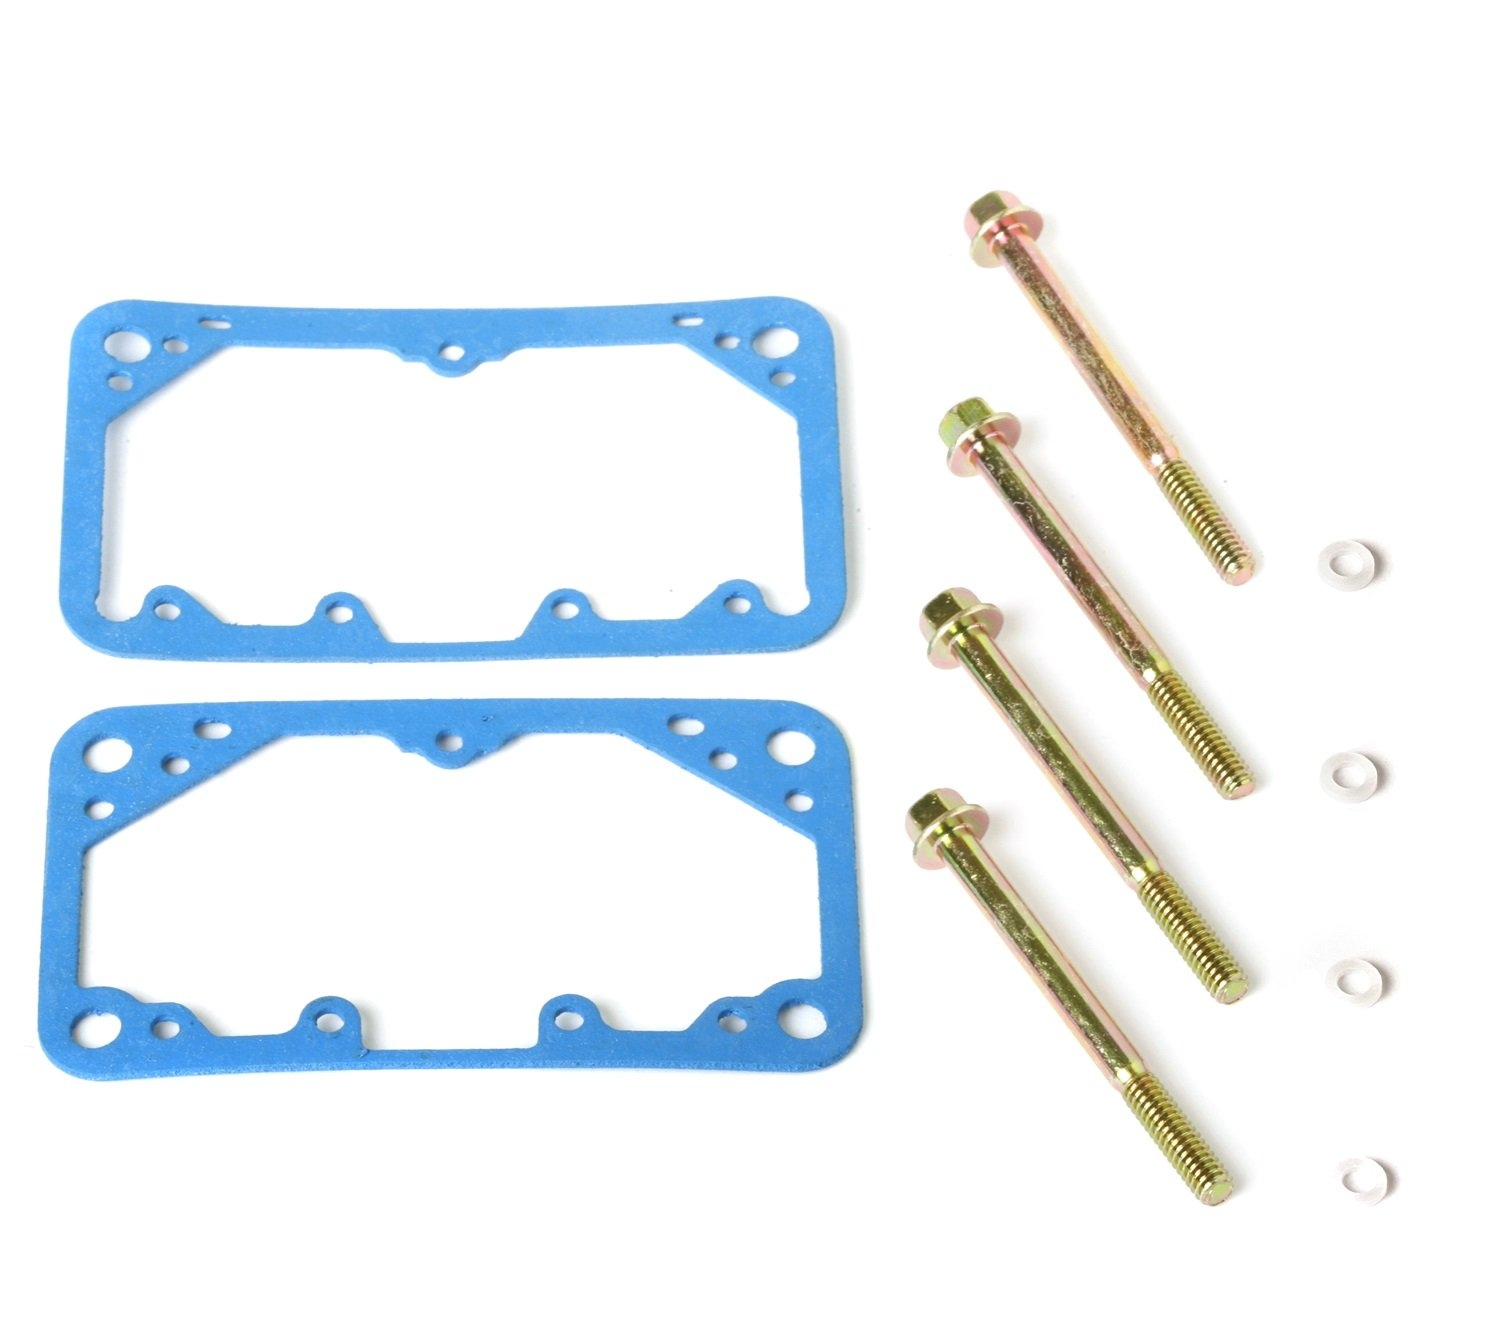 Holley 26-124 Fuel Bowl Screw & Gasket Kit